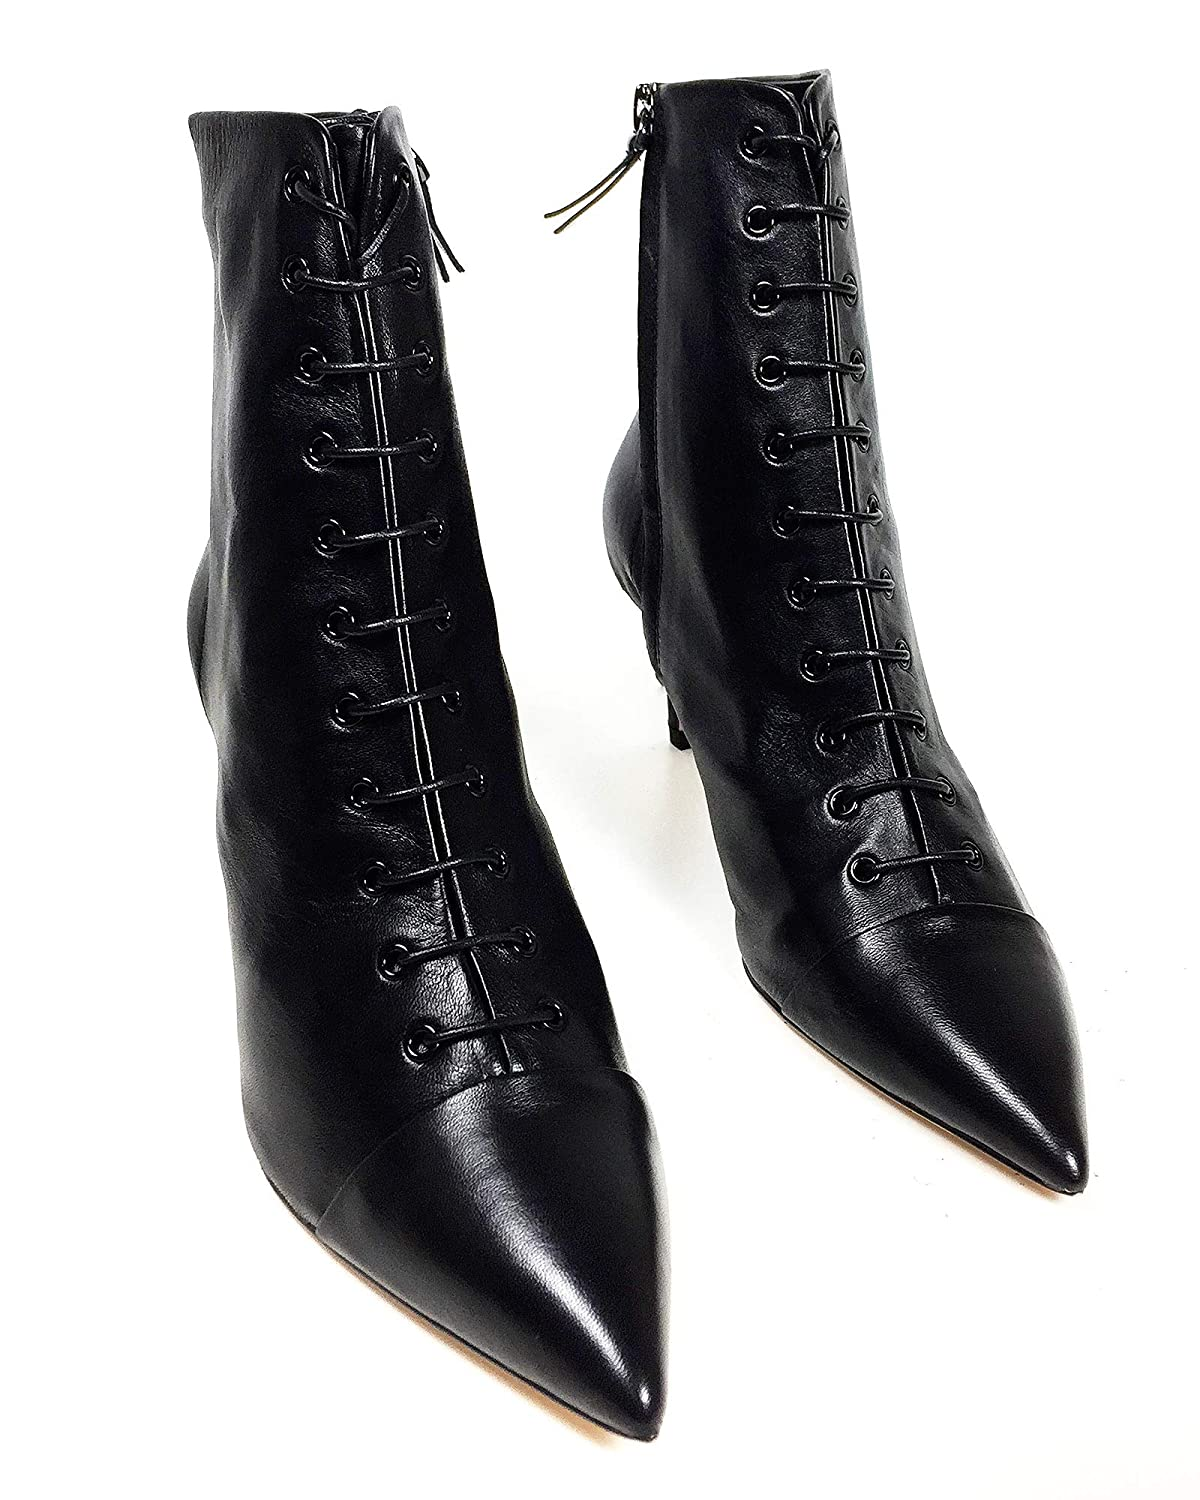 d48ca68d9cd Amazon.com  Zara Women Lace-up leather high heel ankle boots 5144 301   Clothing